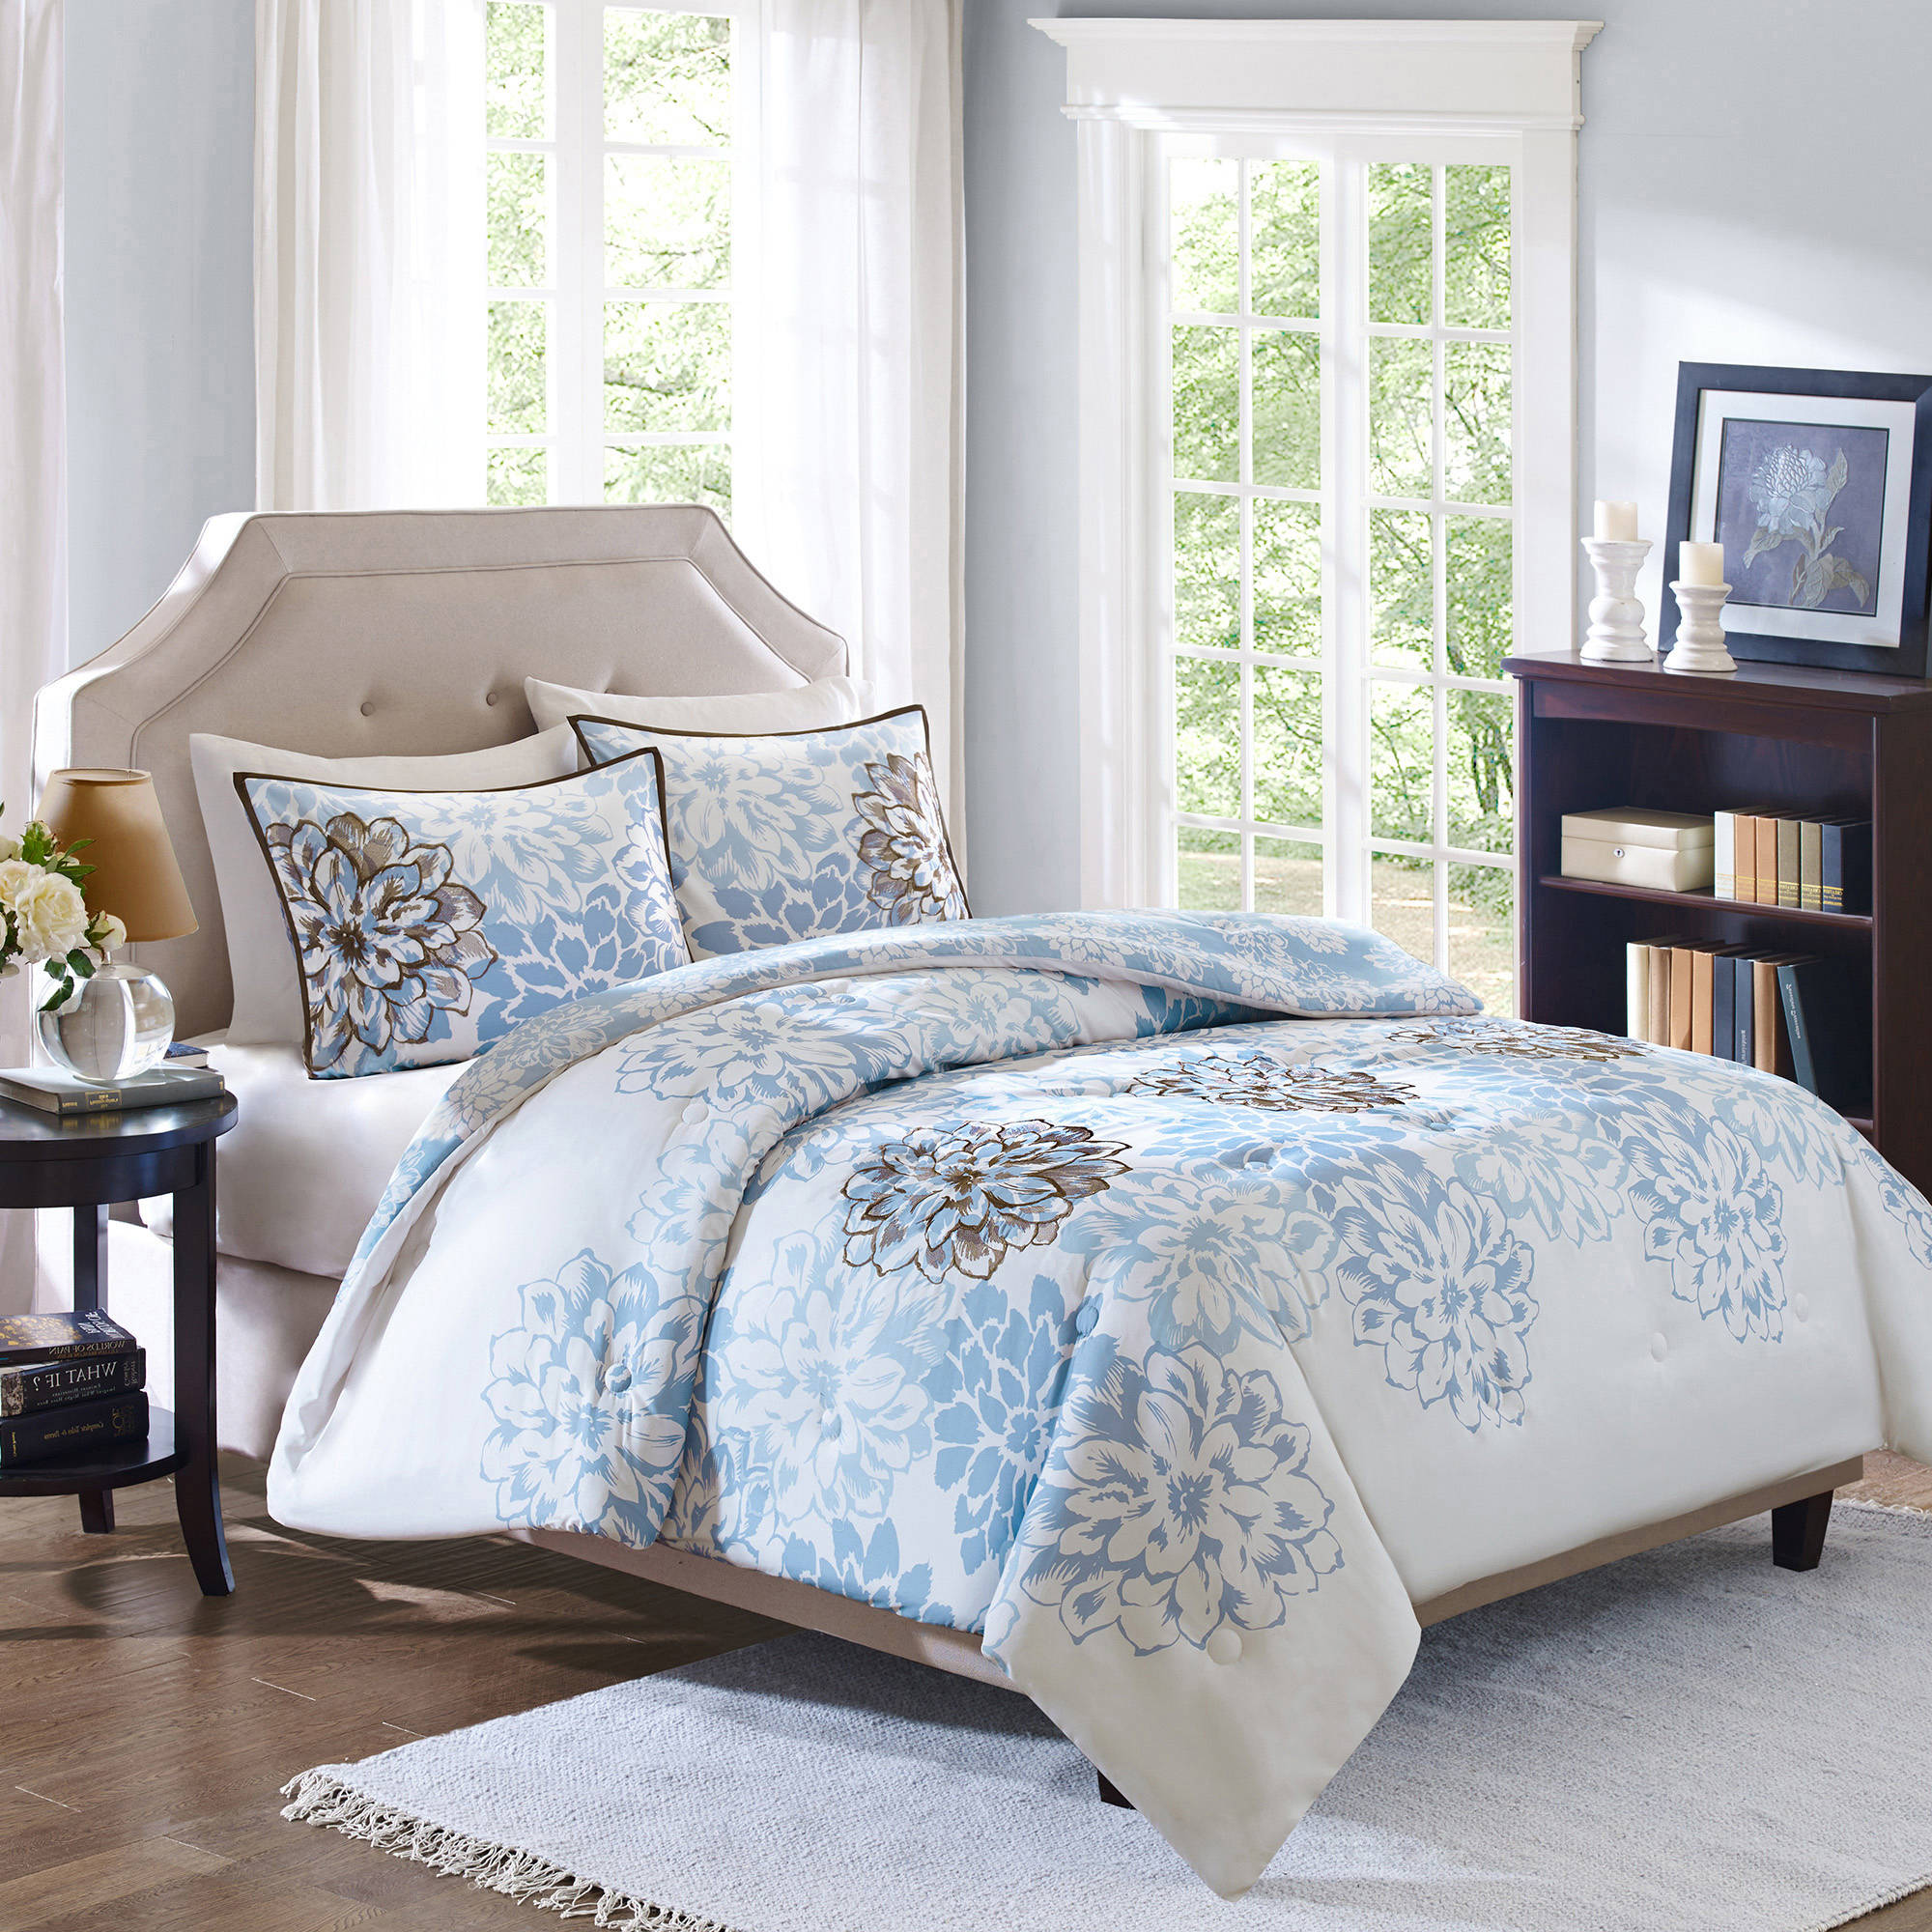 Attirant Better Homes And Gardens Capri 3 Piece Reversible Comforter Bedding Set    Walmart.com